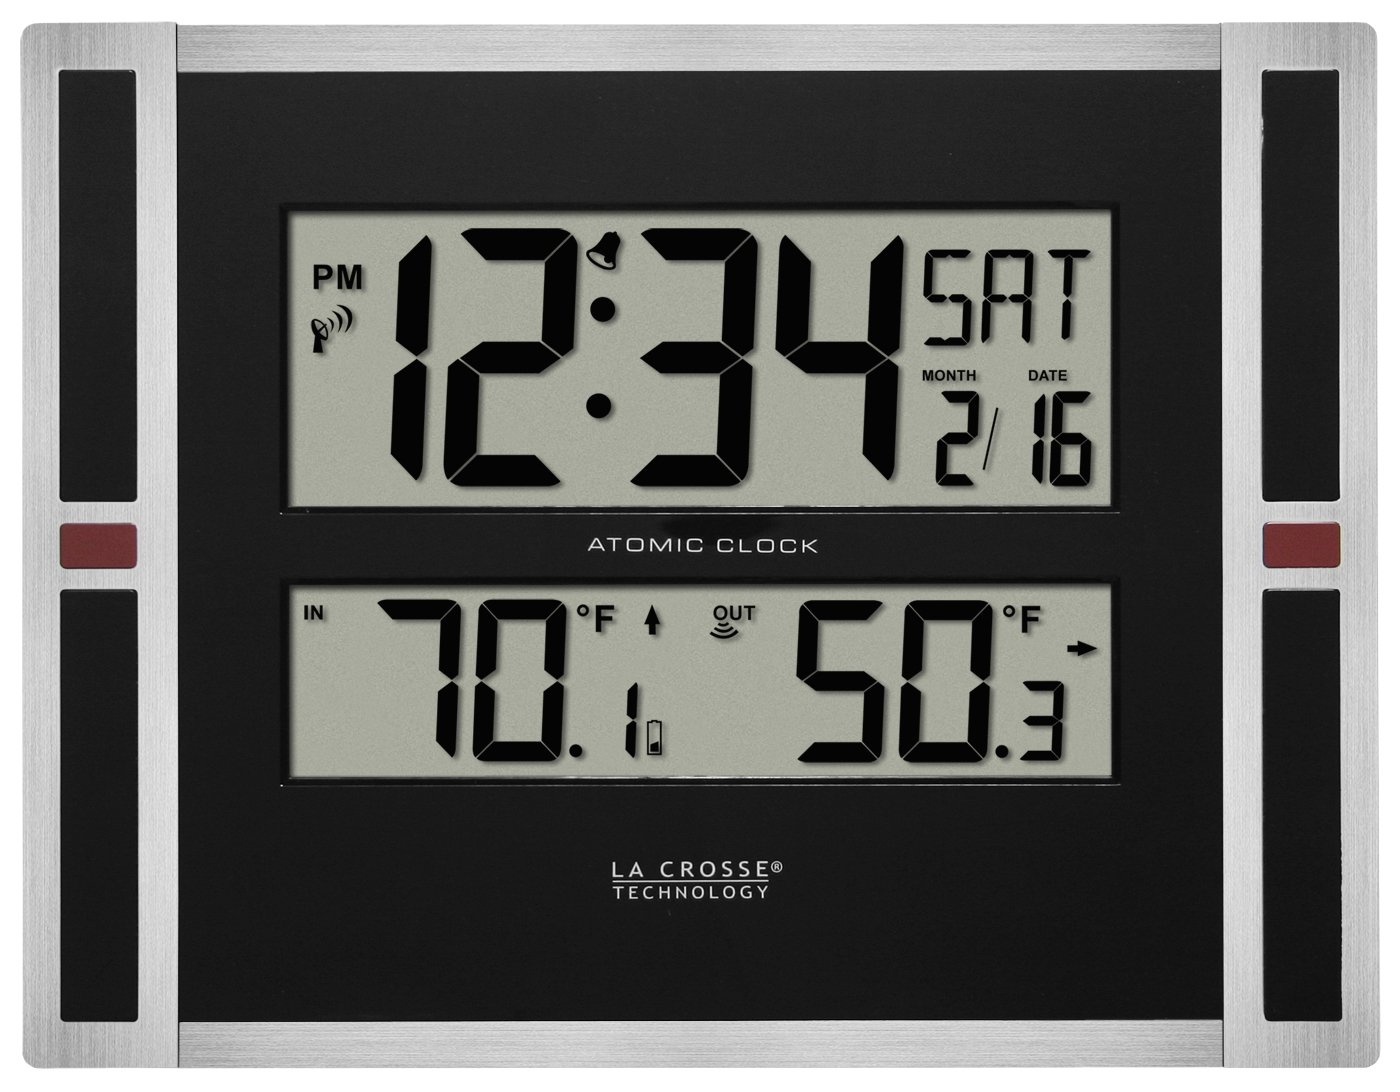 La Crosse Technology 513-149 11 inch Atomic digital wall clock with temperature by La Crosse Technology